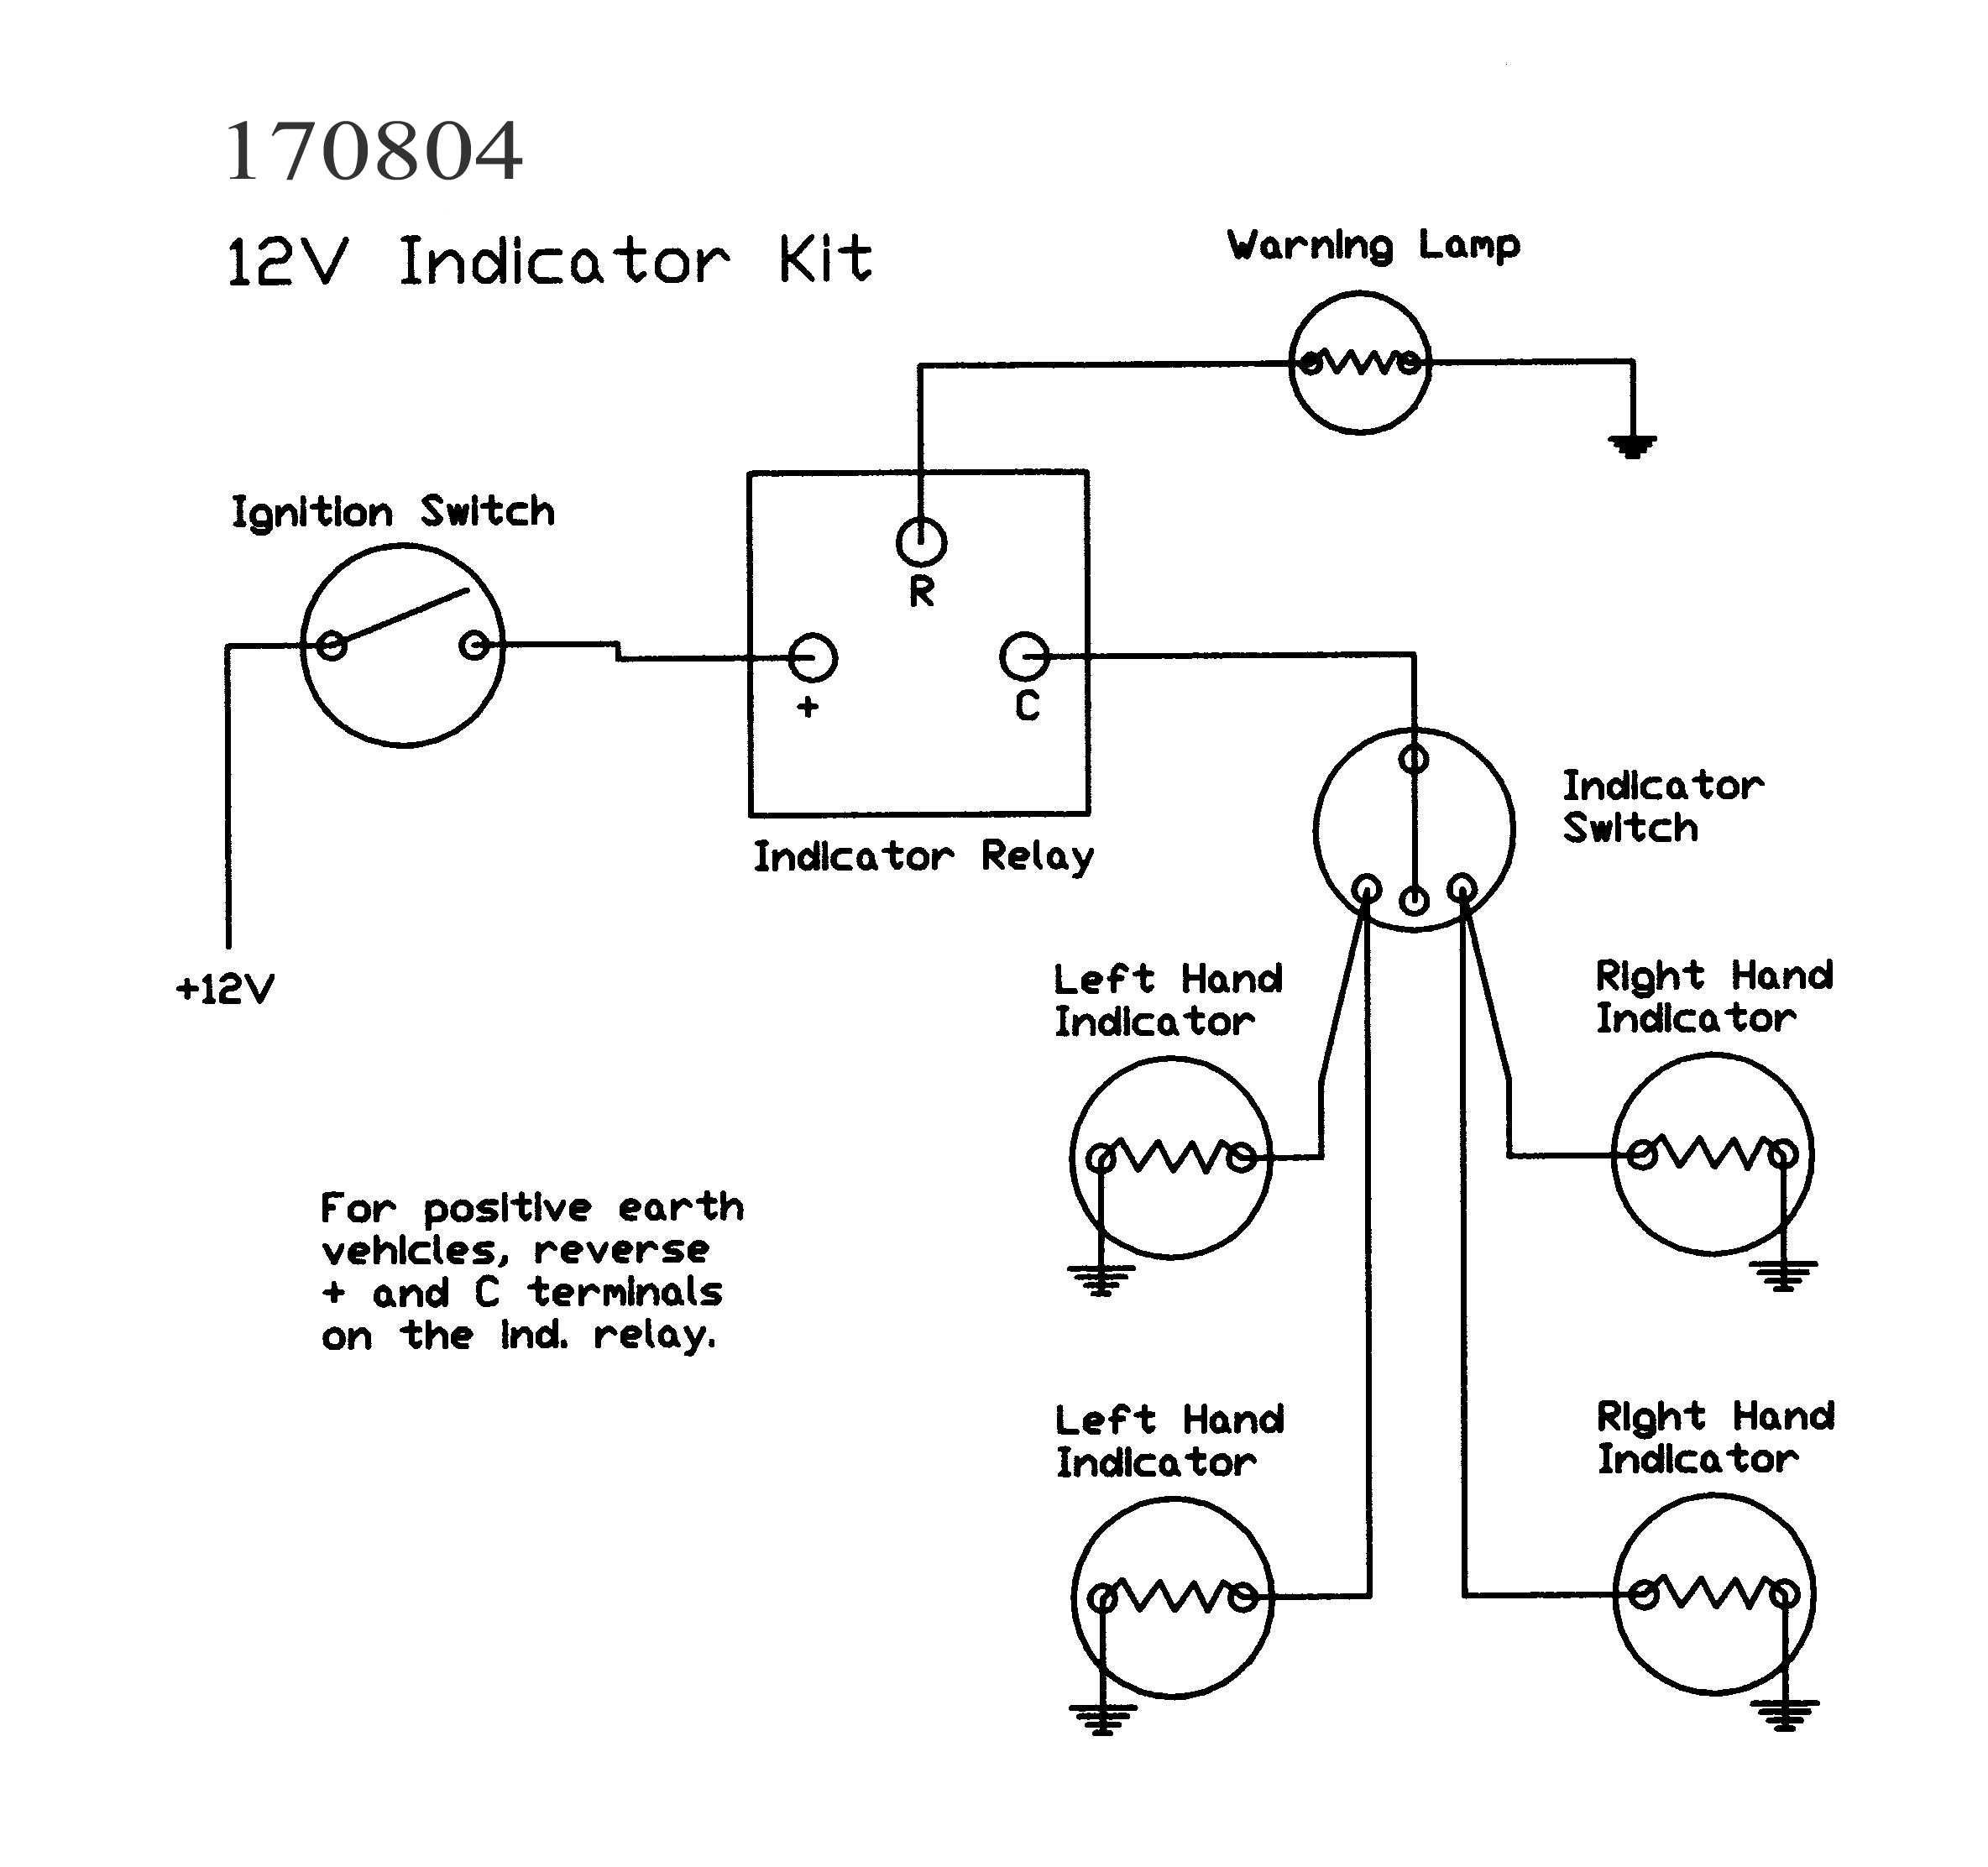 V Schematic on 12v Led Flasher Circuit Diagram